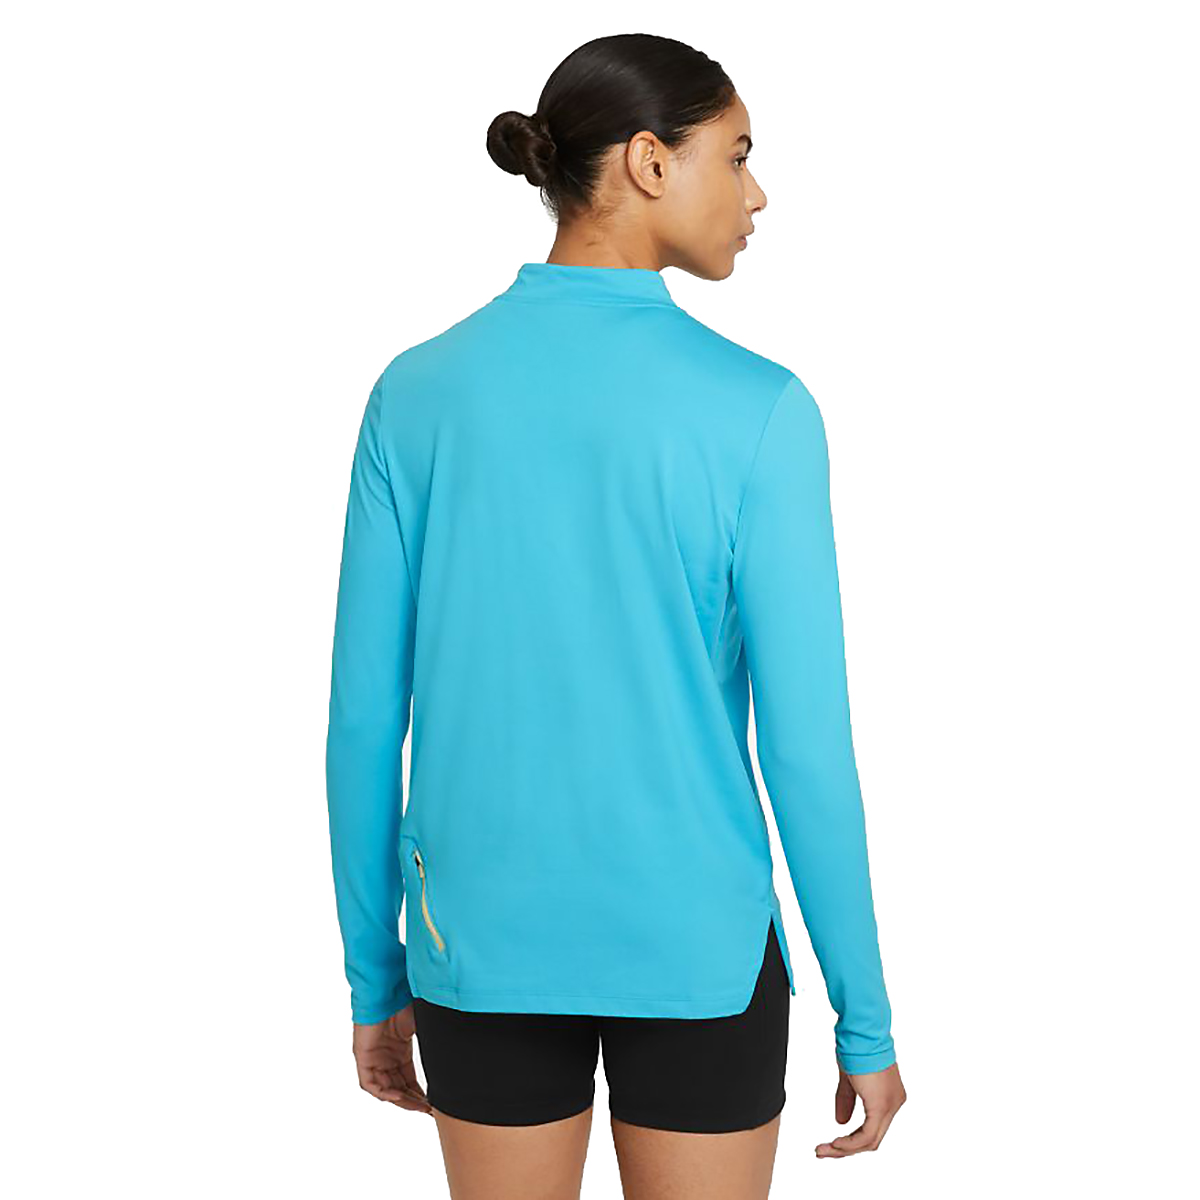 Women's Nike Element Trail Running Midlayer - Color: Chlorine Blue/Reflective Silv - Size: XS, Chlorine Blue/Reflective Silv, large, image 2